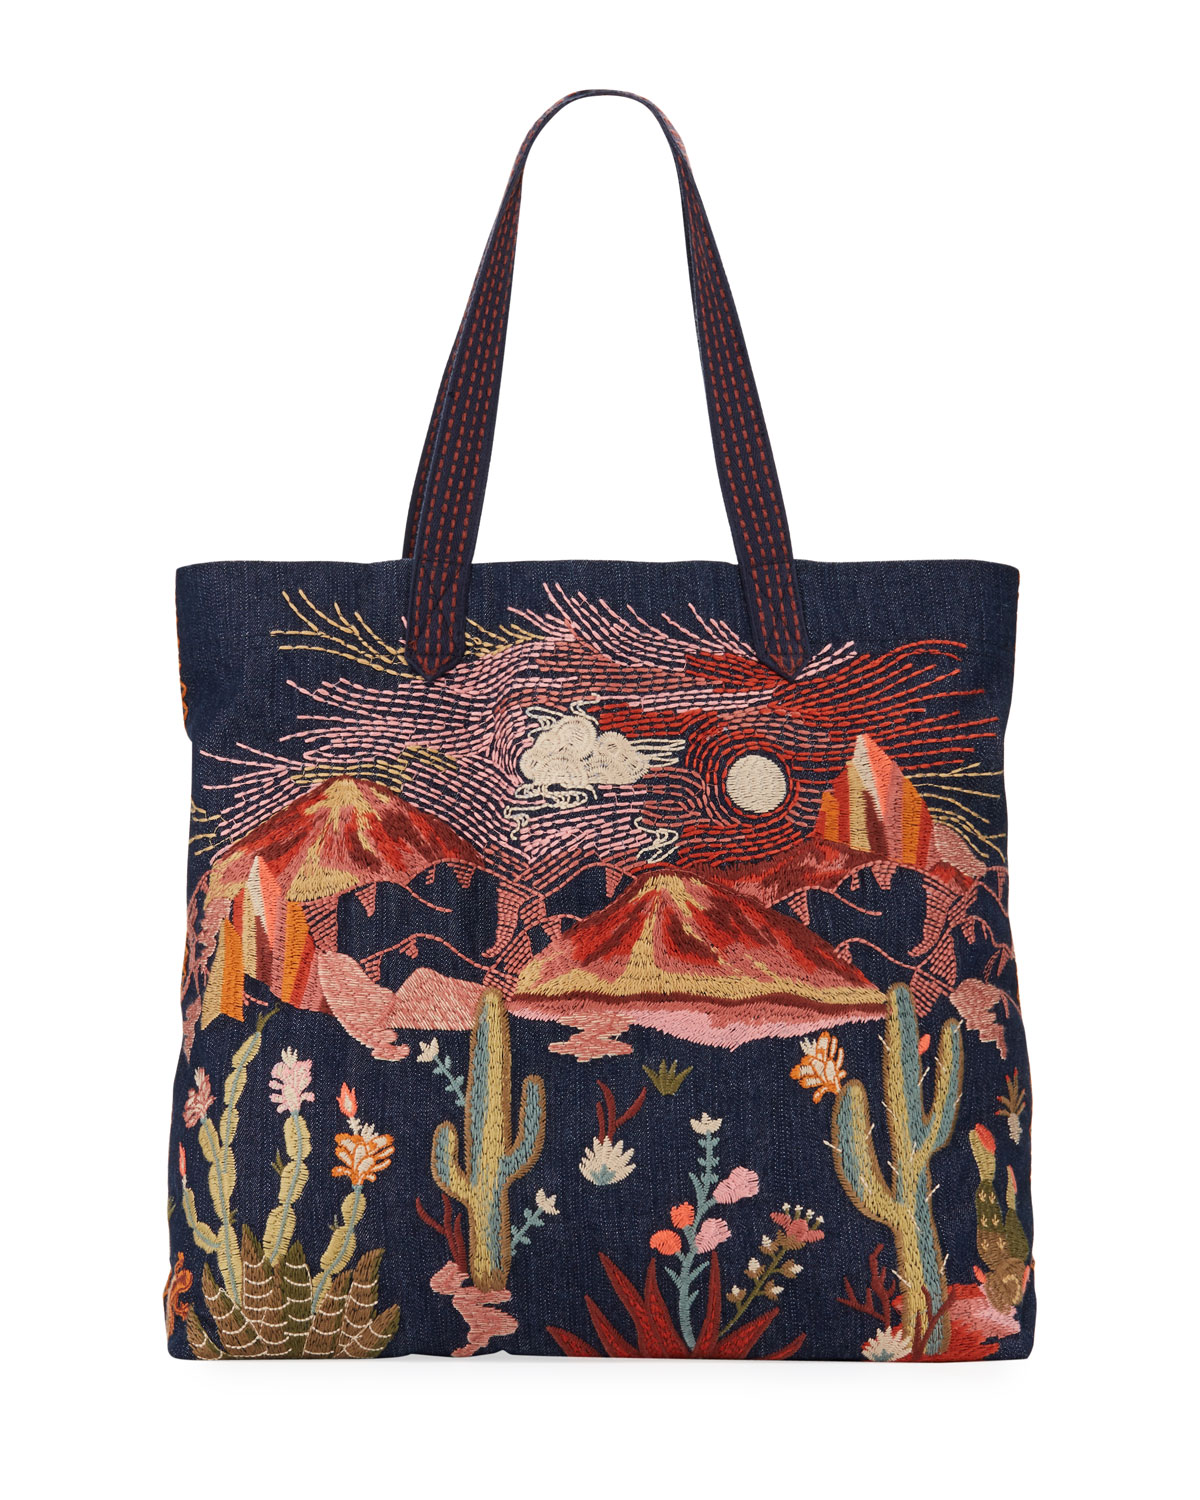 Yucca Embroidered Denim Everyday Tote Bag by Johnny Was